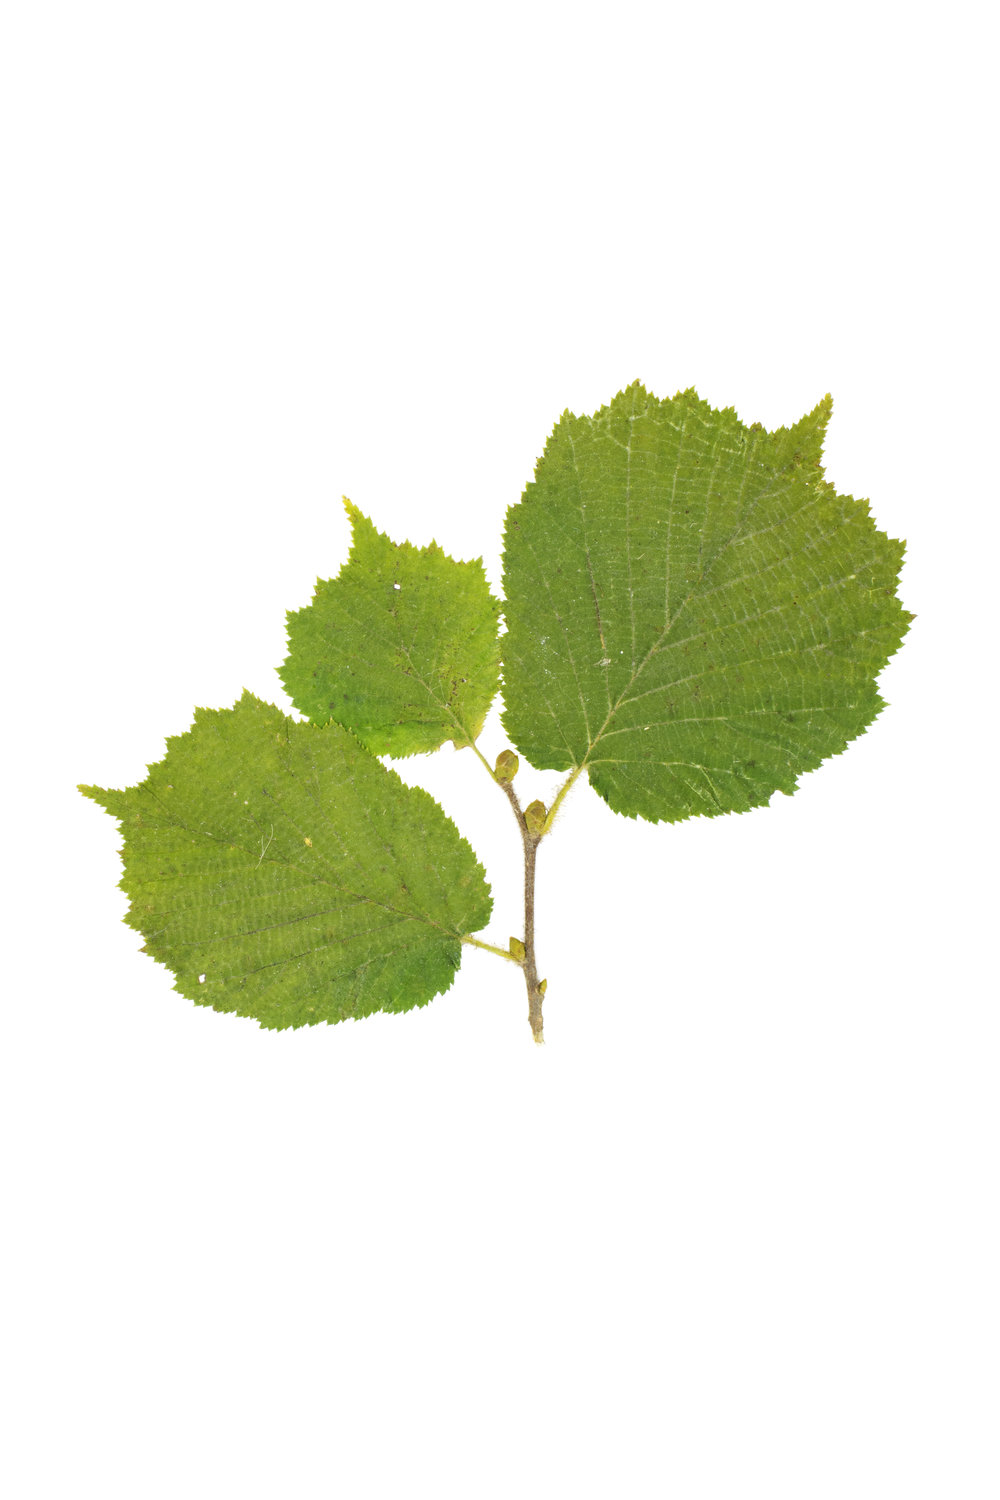 Common Hazel / Corylus avellana